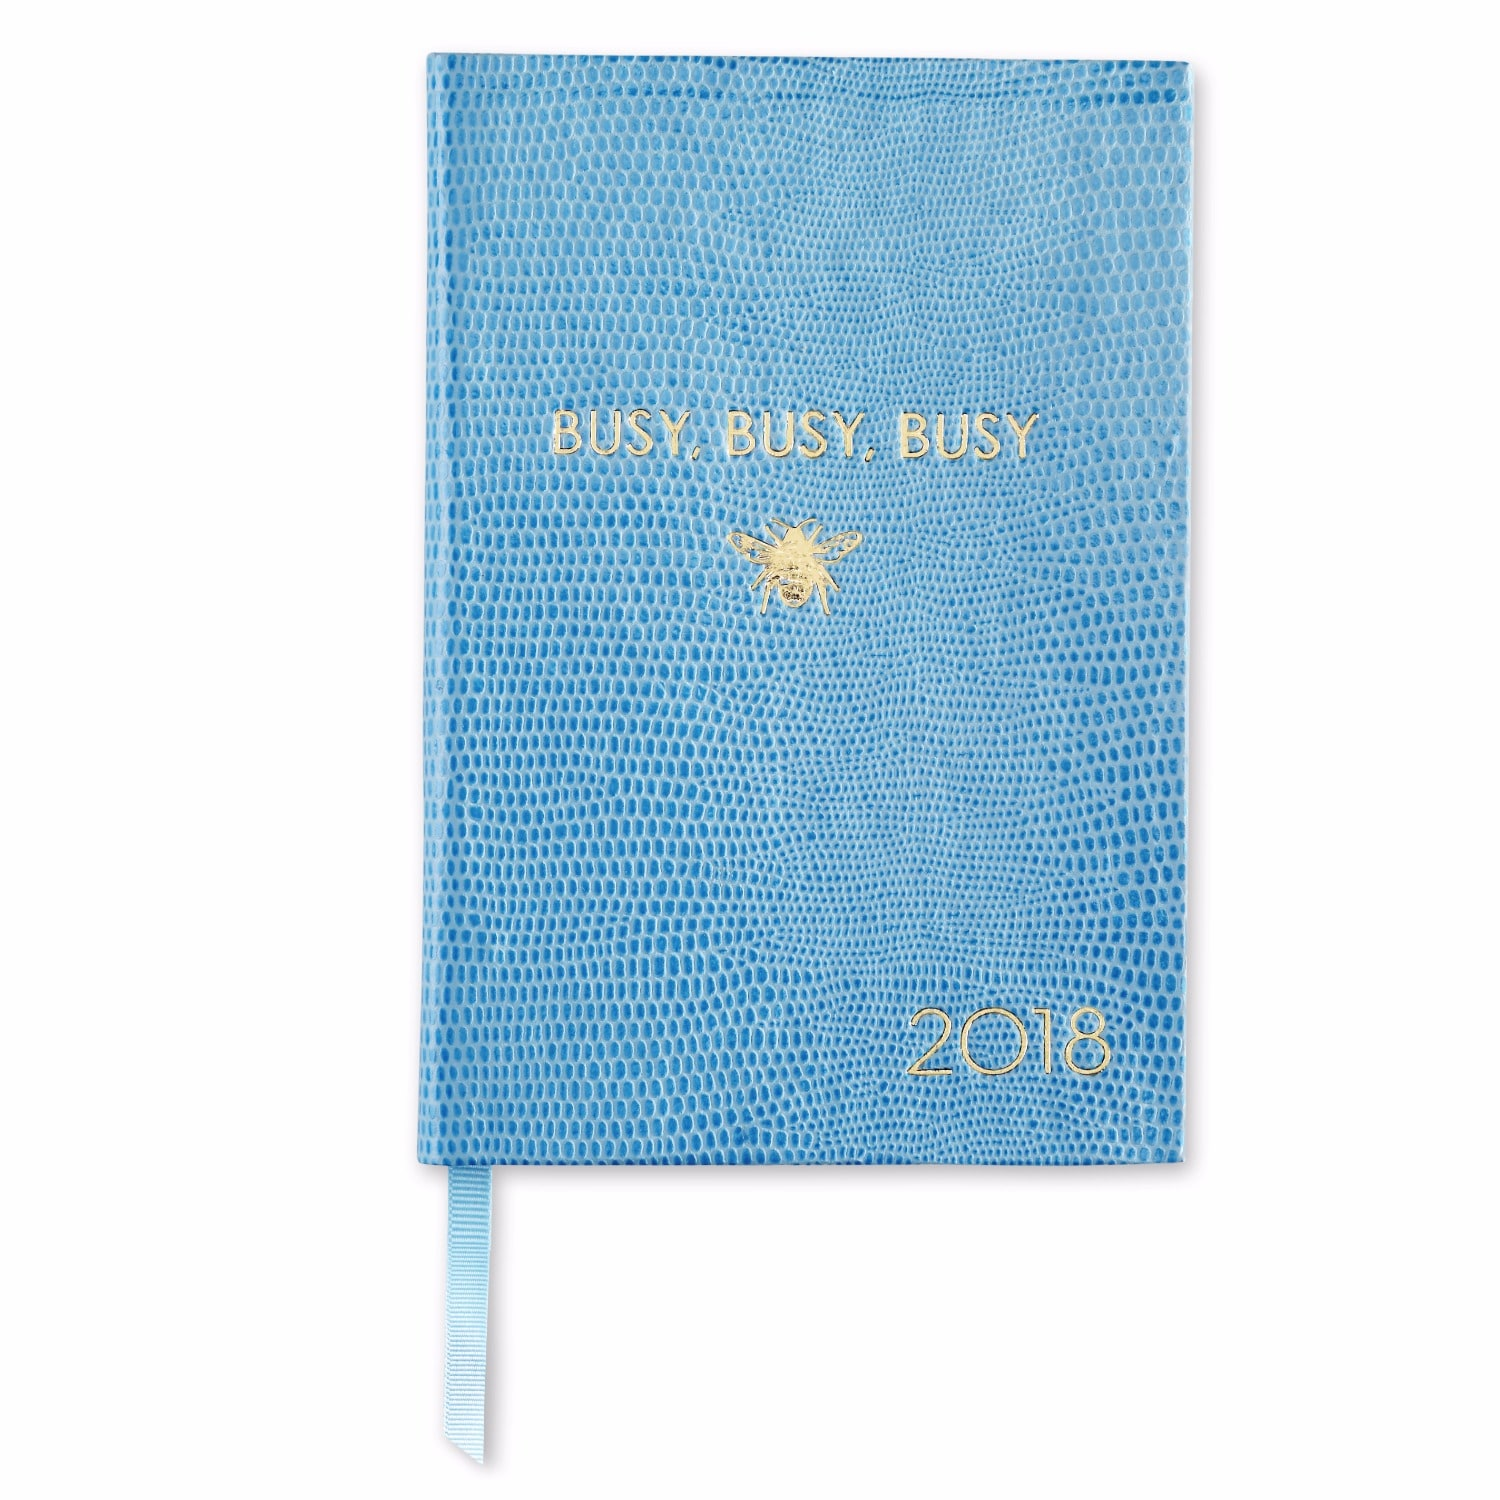 Sloane Stationery - 2018 Pocket Diary Busy Busy Busy